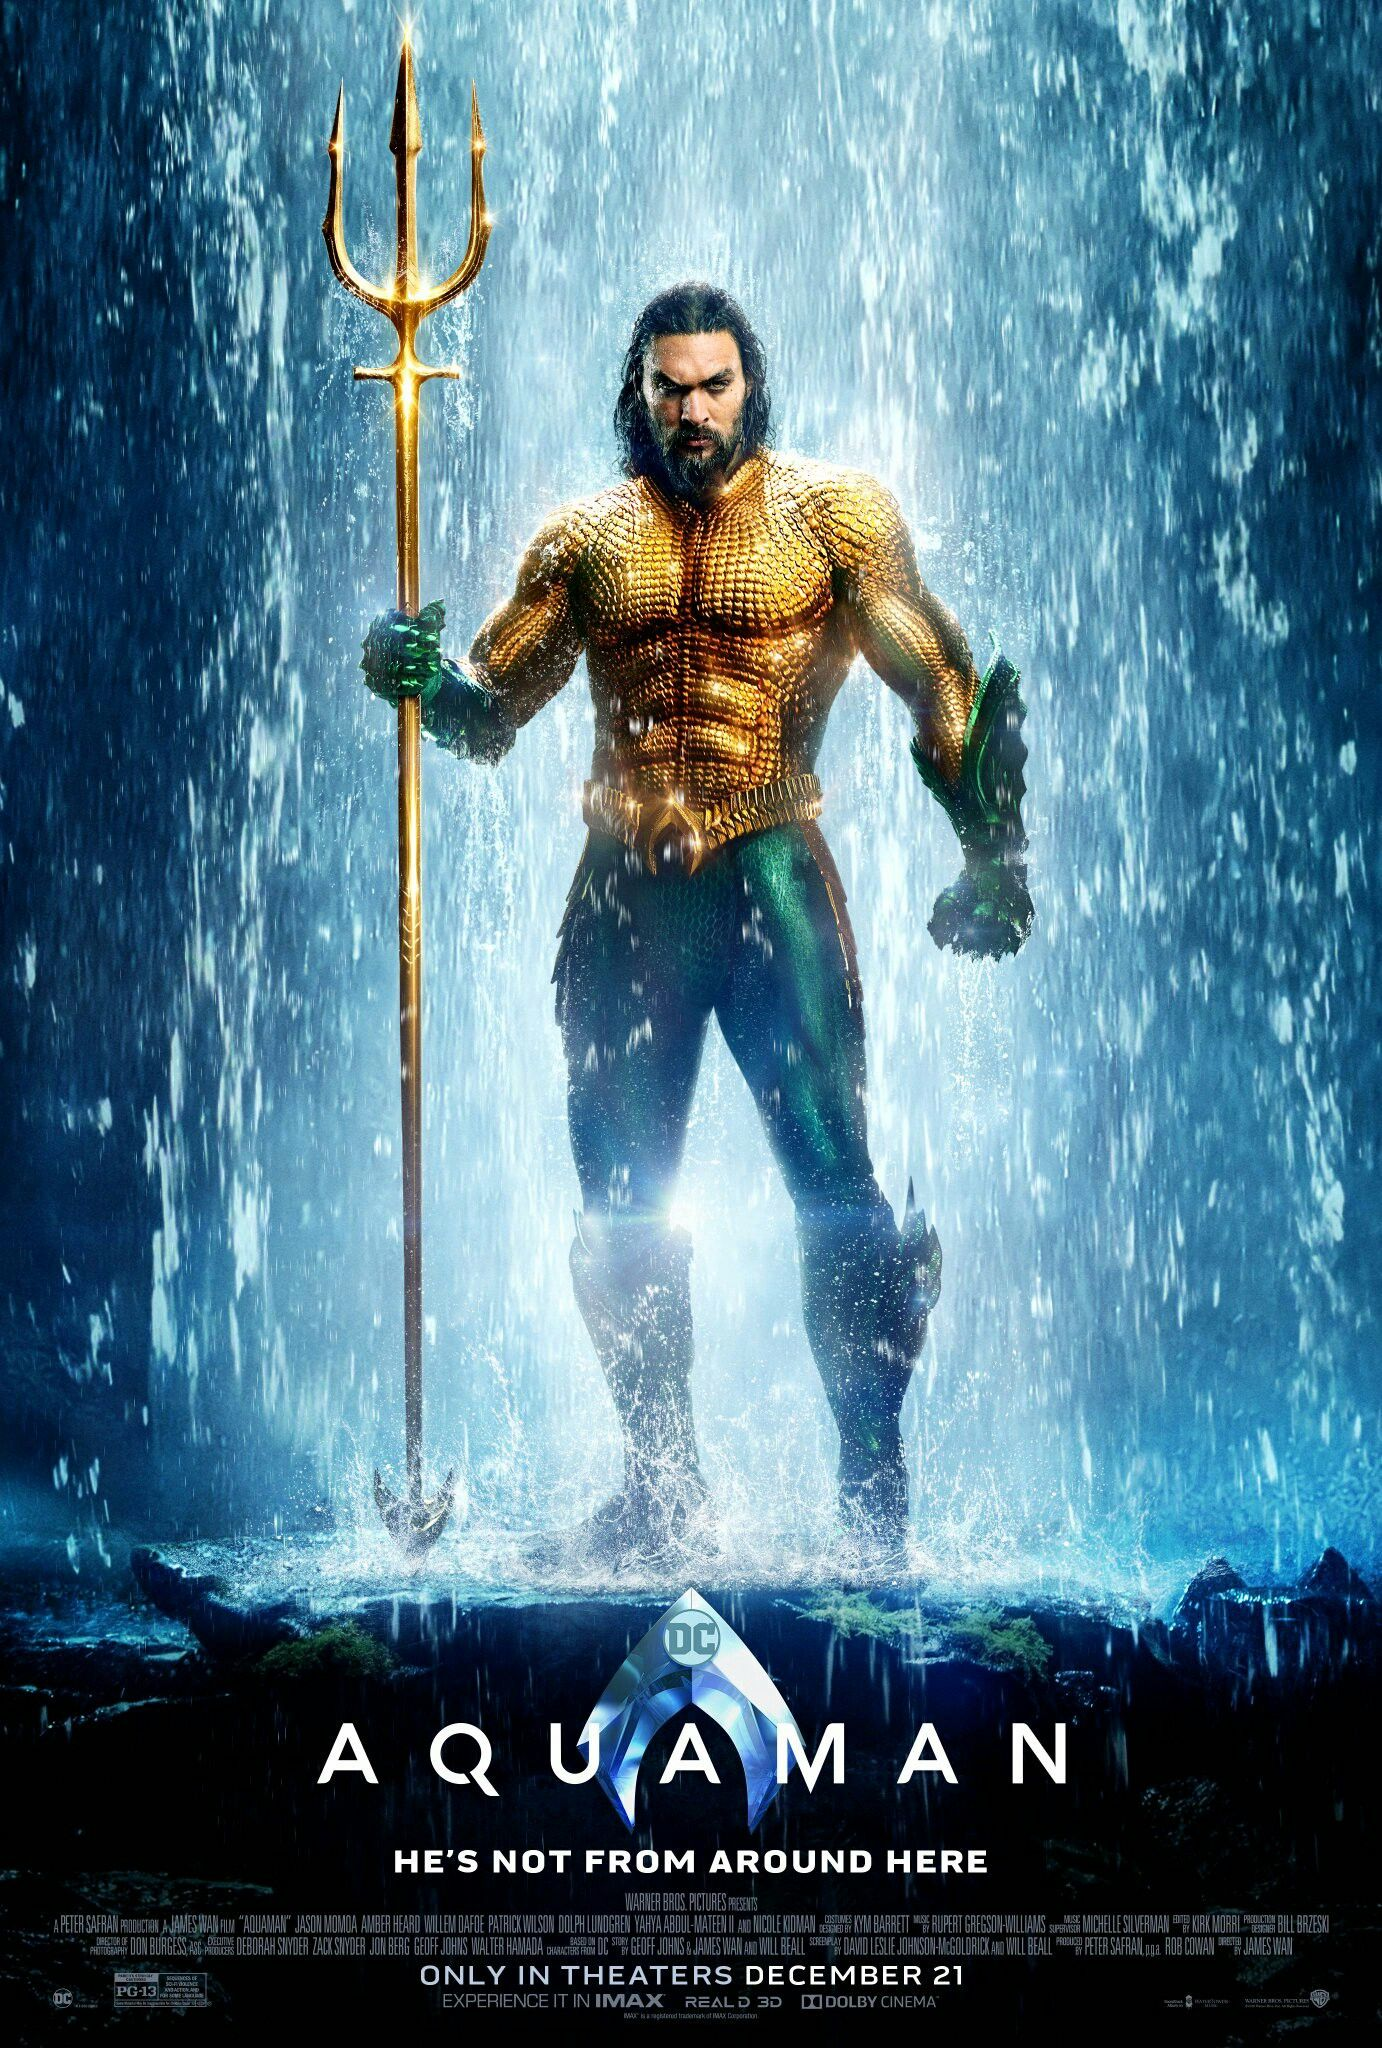 Aquaman Is A 2018 American Superhero Film Based On The Dc Comics